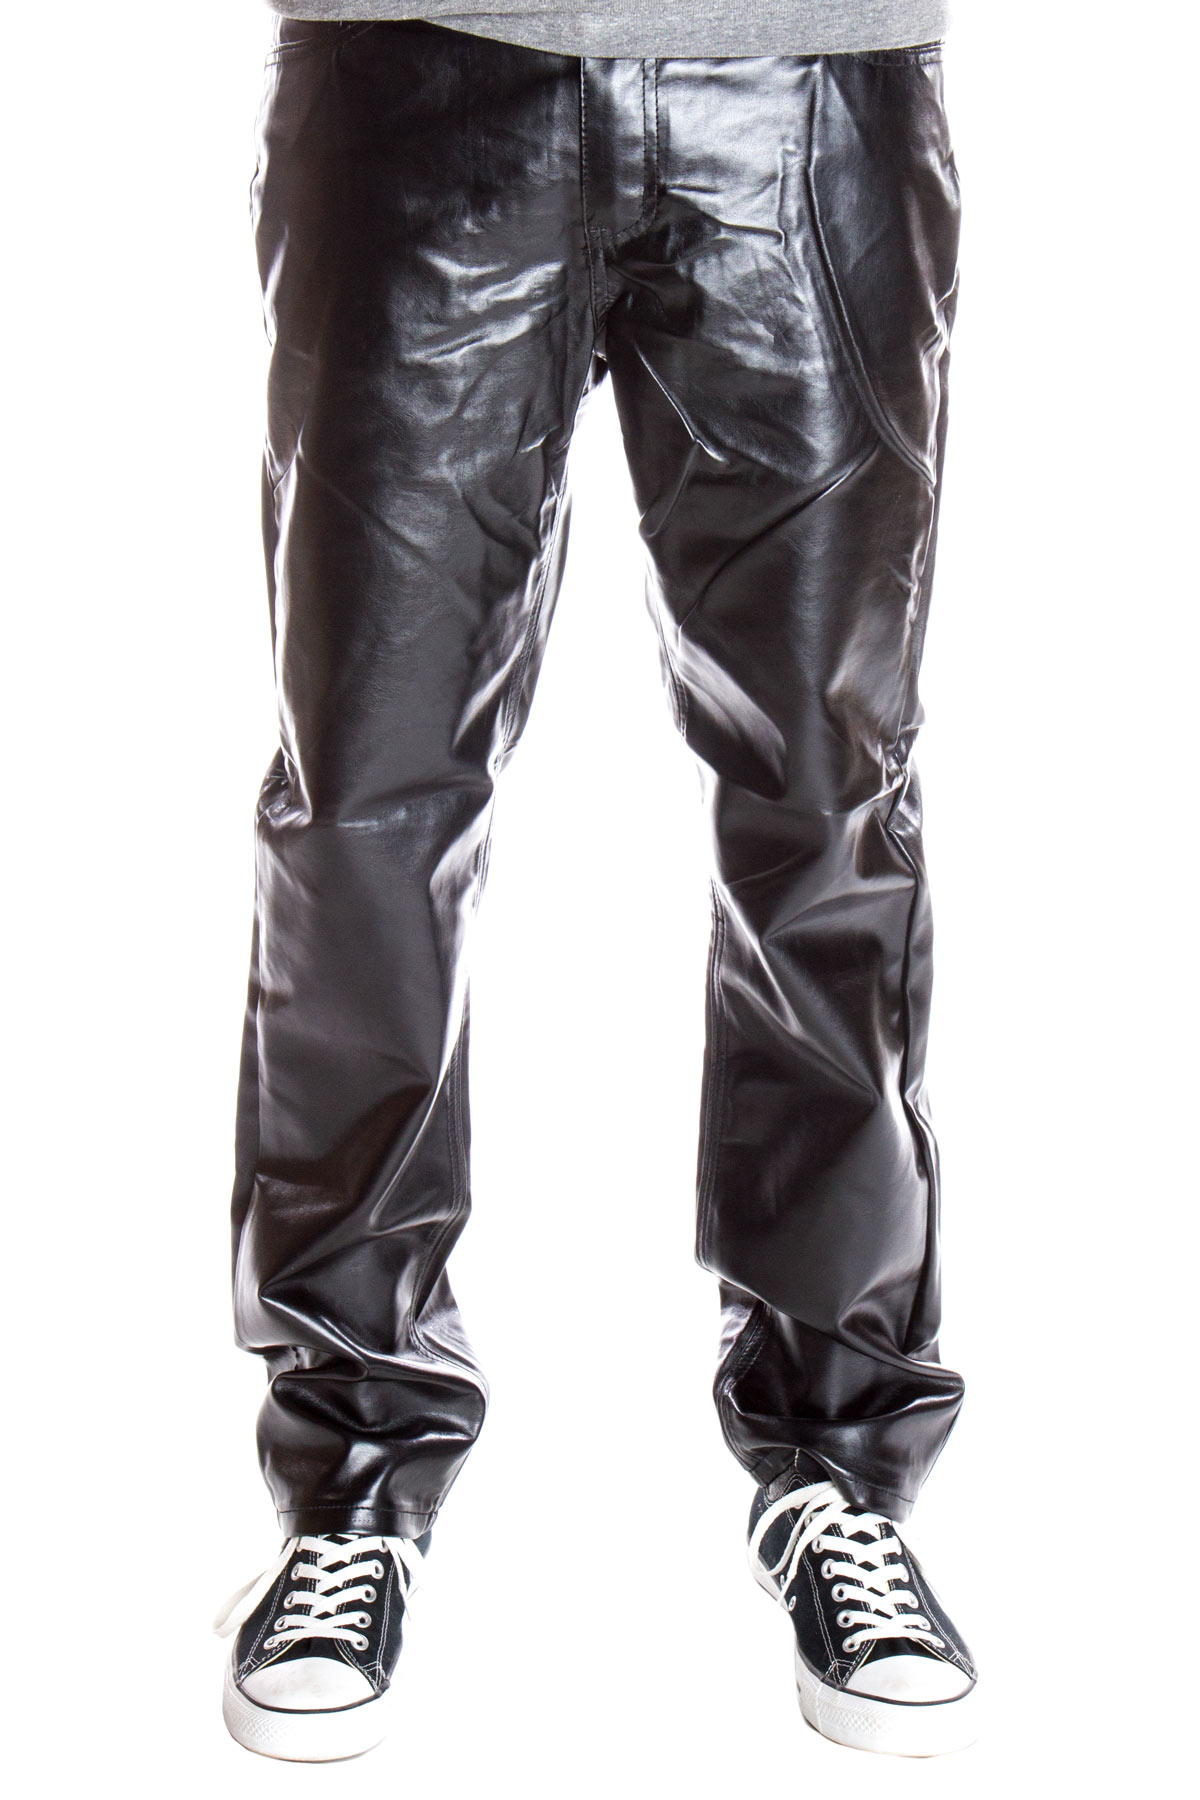 black metallic jeans for men